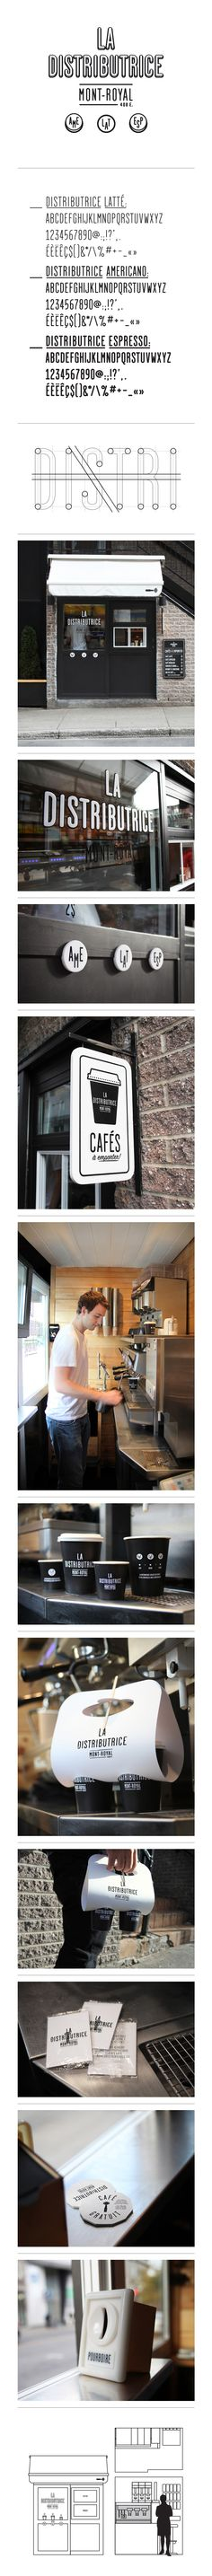 Smallest cafe place in North America, visual identity / Gabriel Lefebvre